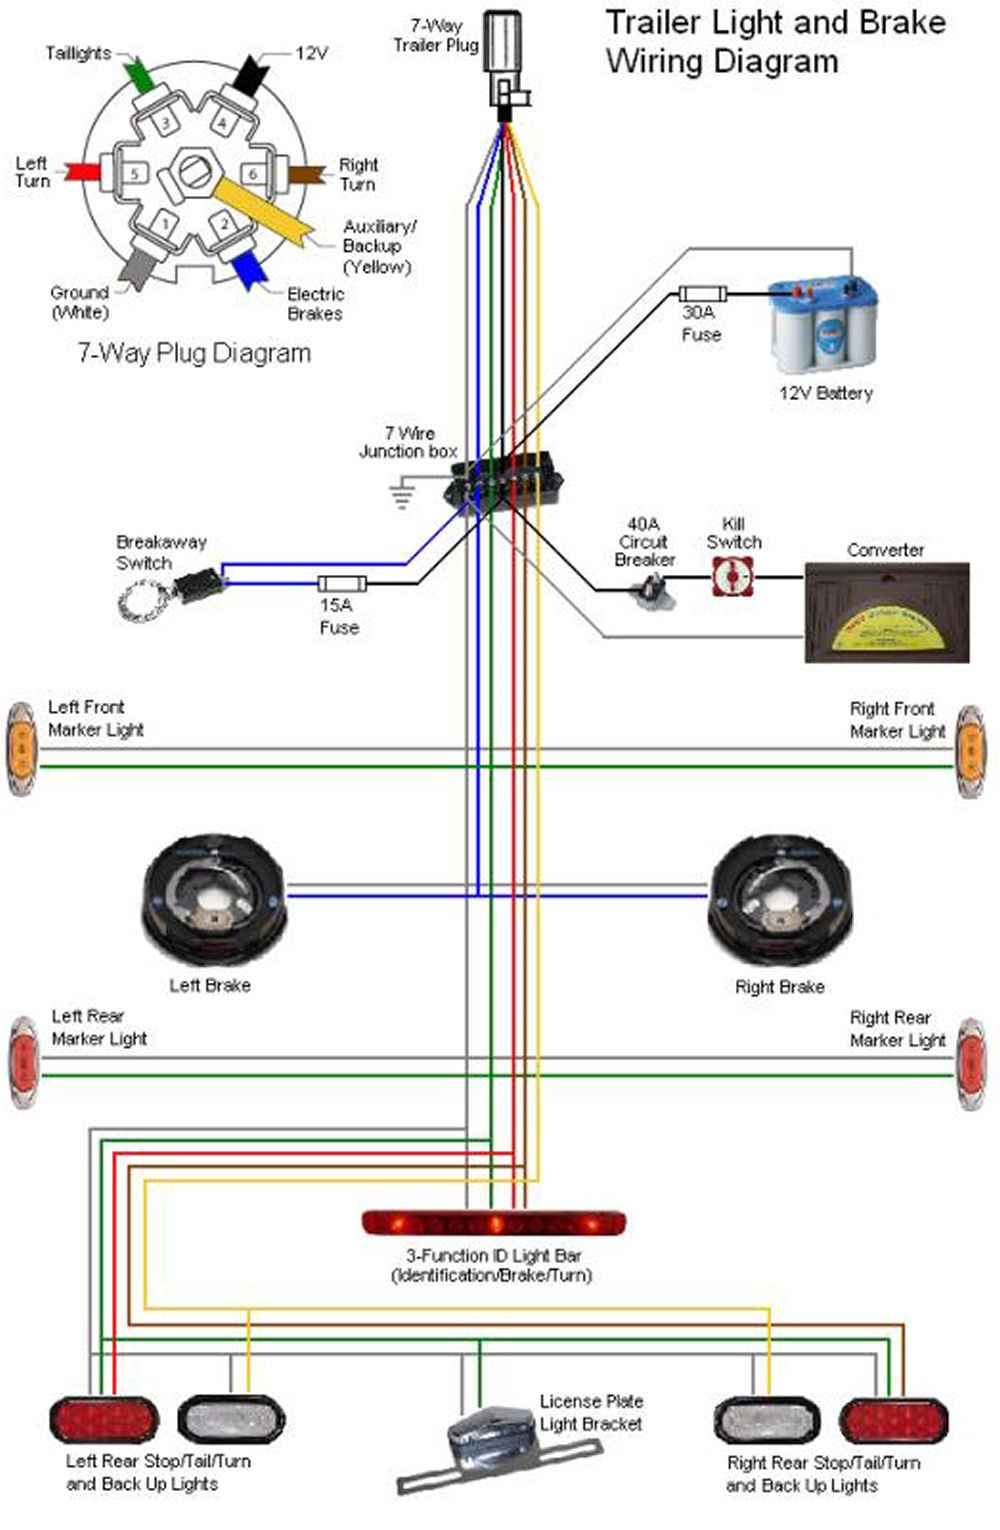 Way Trailer Plug Wiring Diagram Gmc Recent Trailer Brake Controller - Wiring Diagram For A 7 Wire Trailer Plug